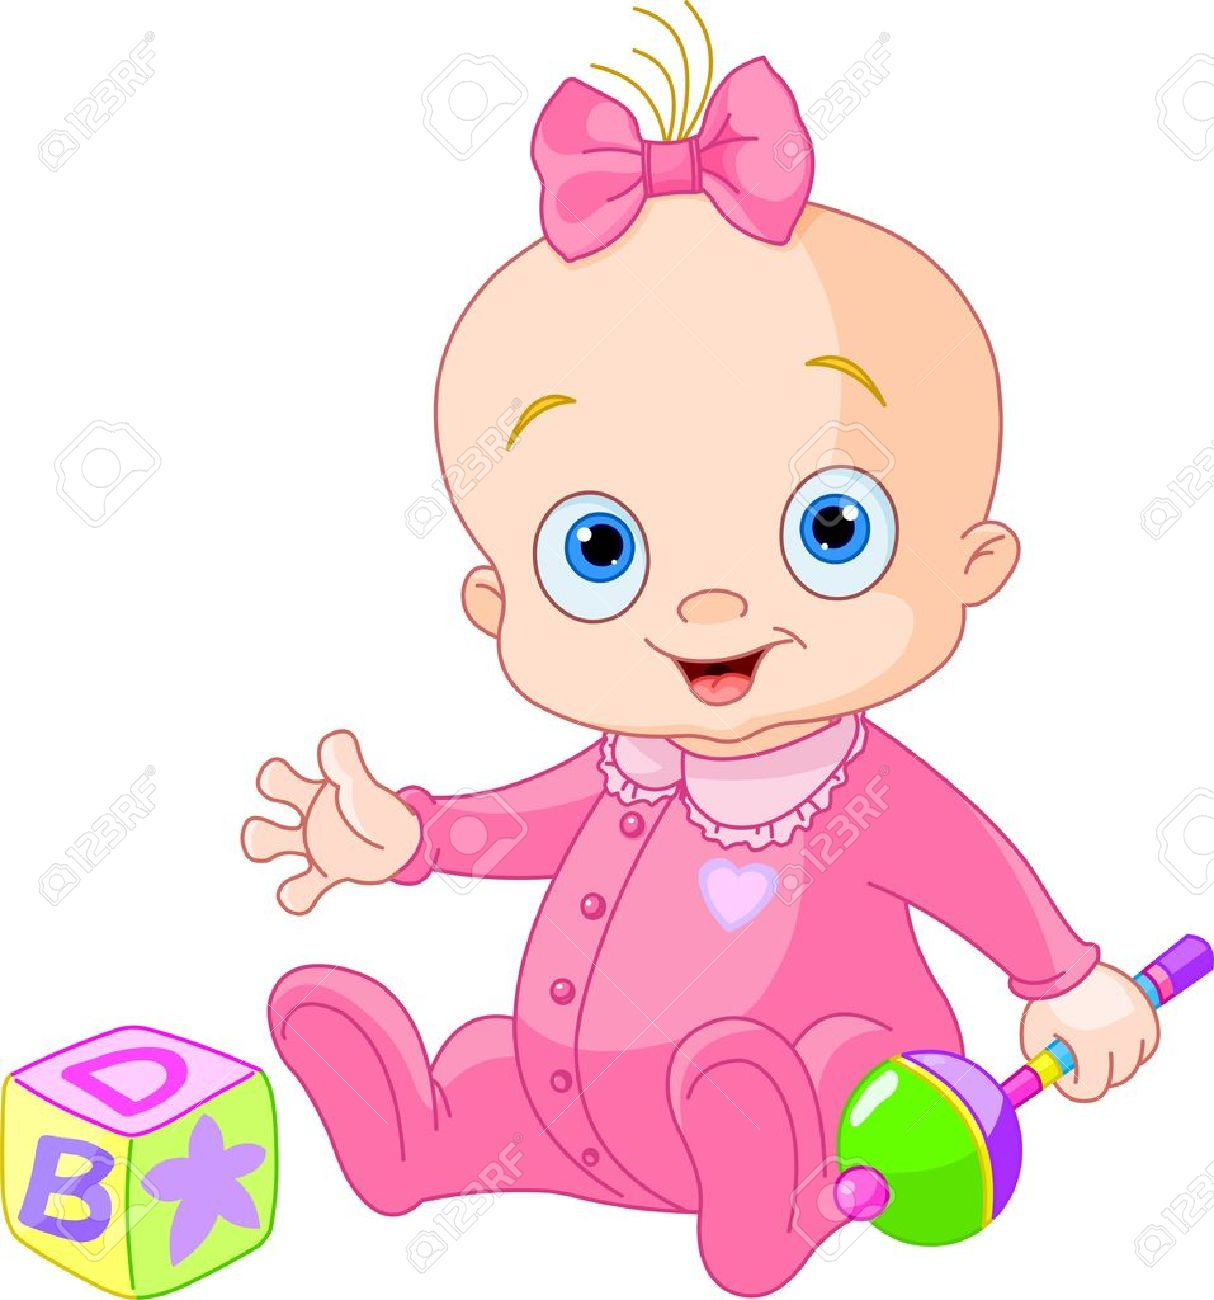 Baby girl pink clipart. Playing with rattle royalty